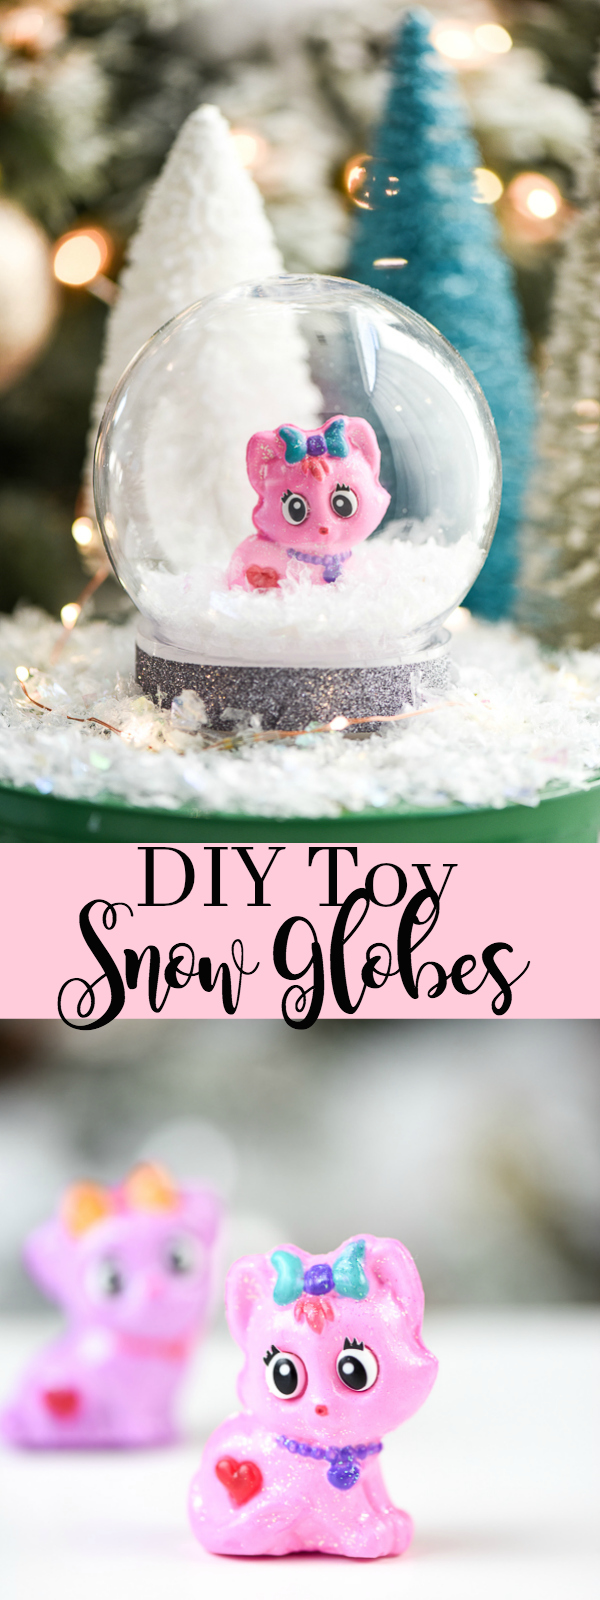 toy-snow-globes-for-kids